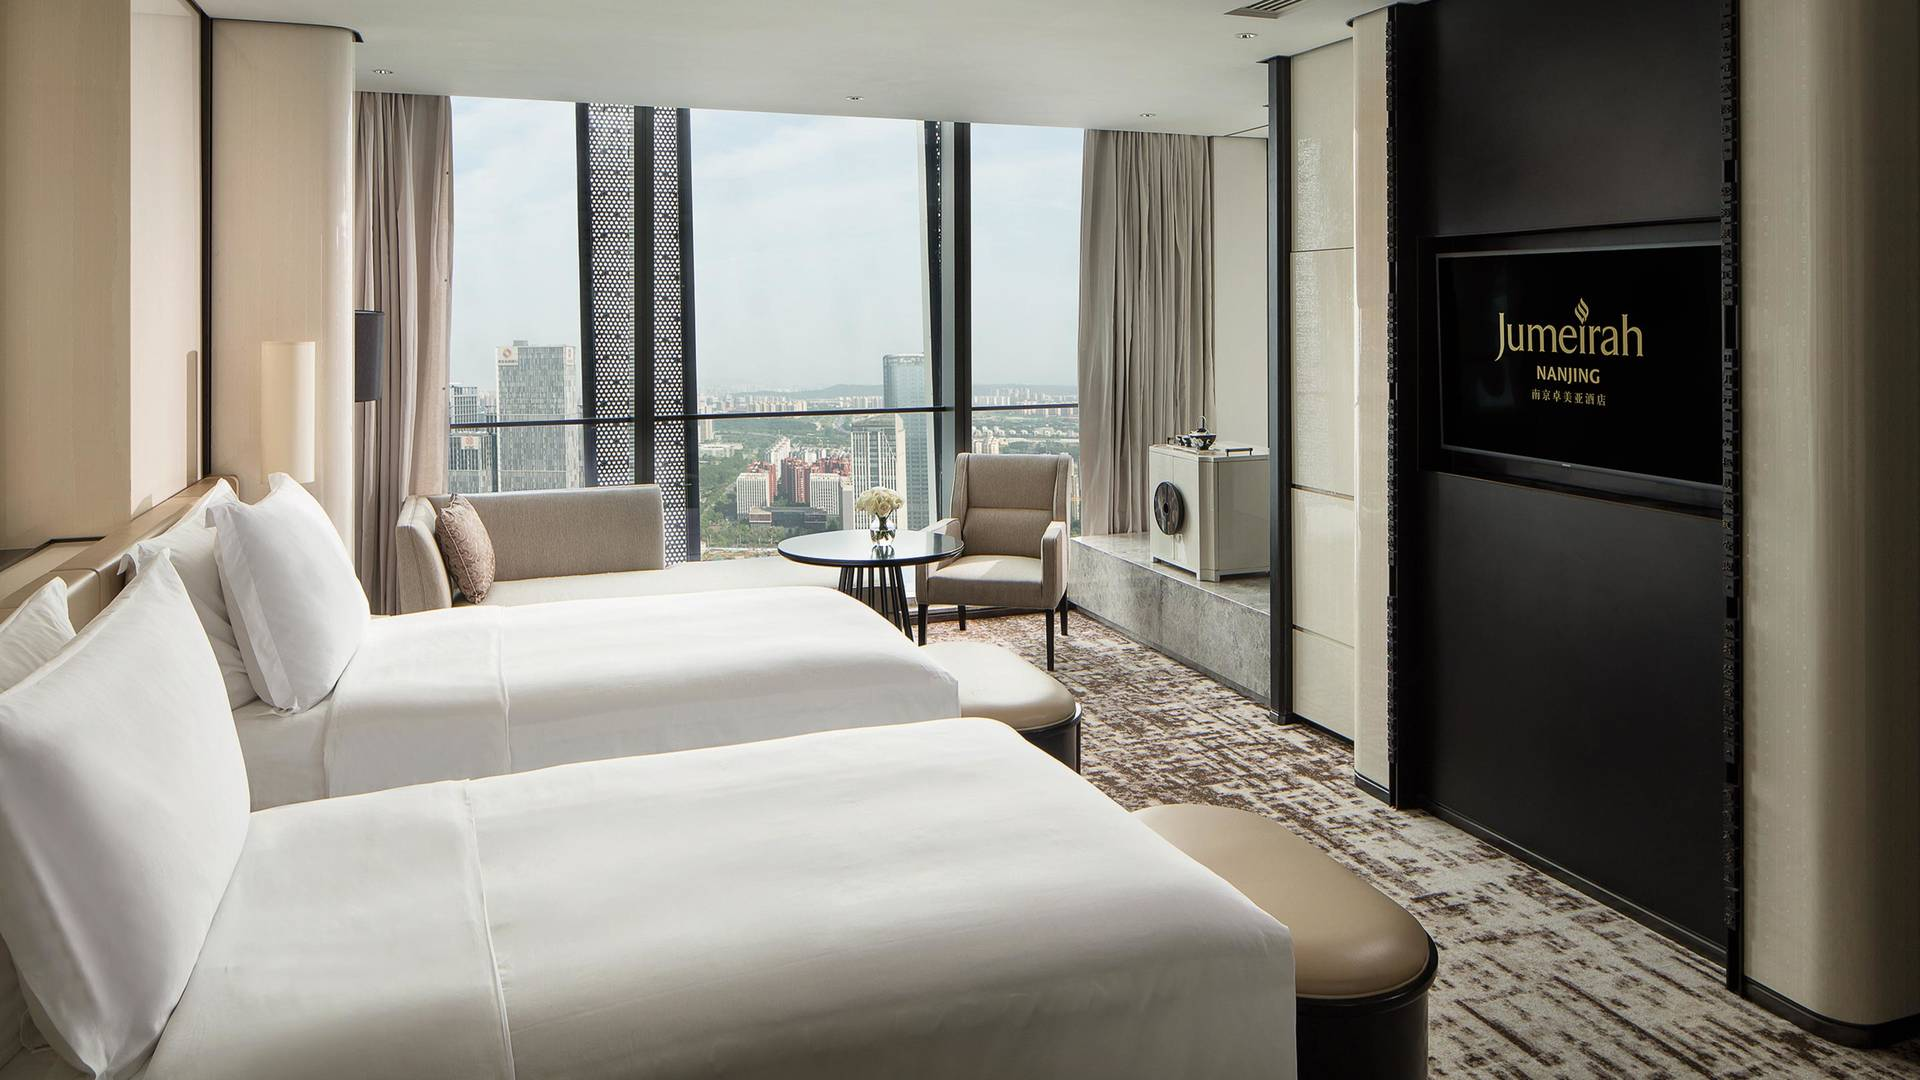 Jumeirah Nanjing Deluxe Twin Room with City View